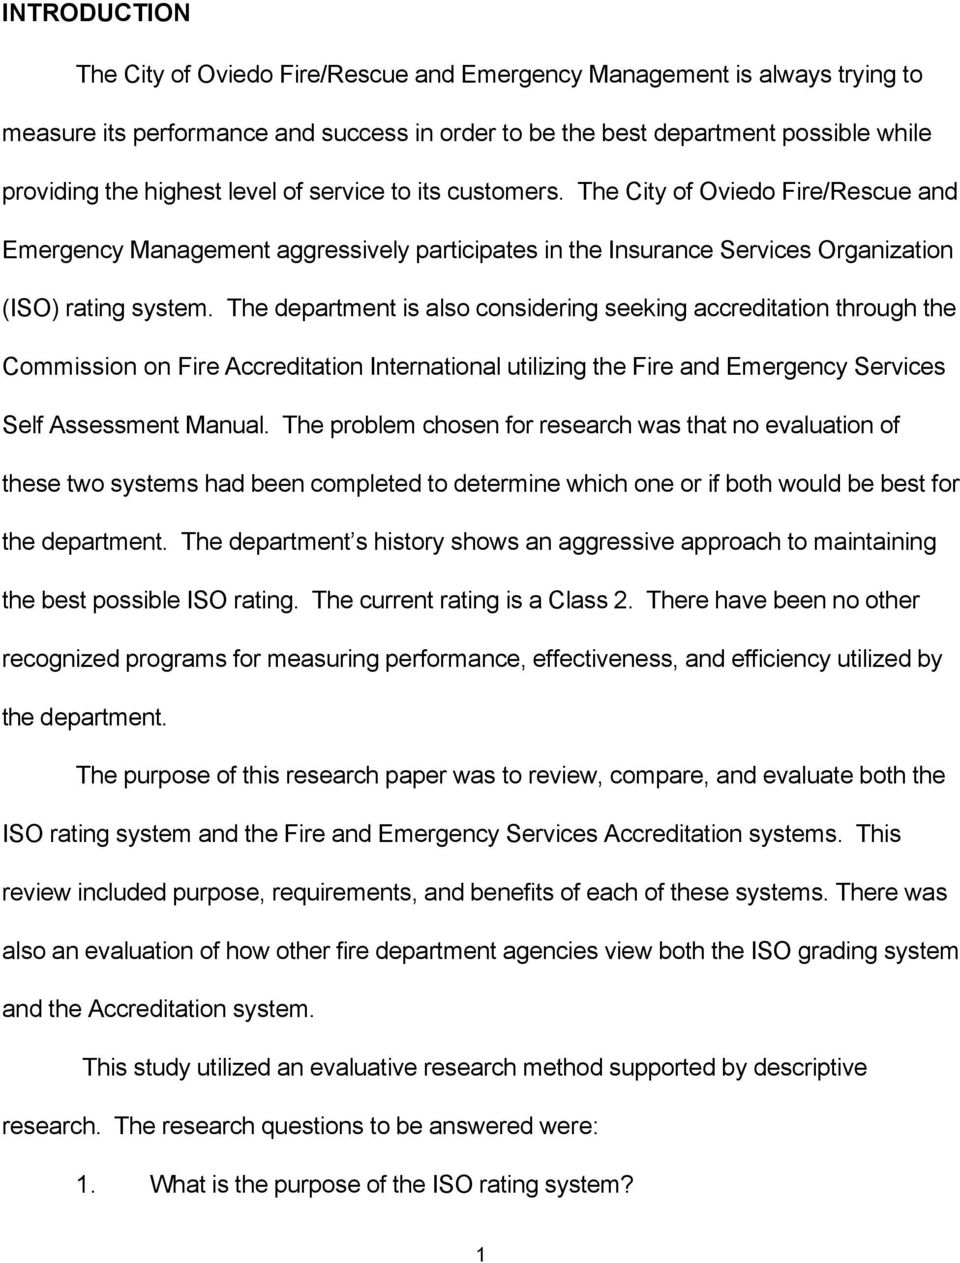 The department is also considering seeking accreditation through the Commission on Fire Accreditation International utilizing the Fire and Emergency Services Self Assessment Manual.